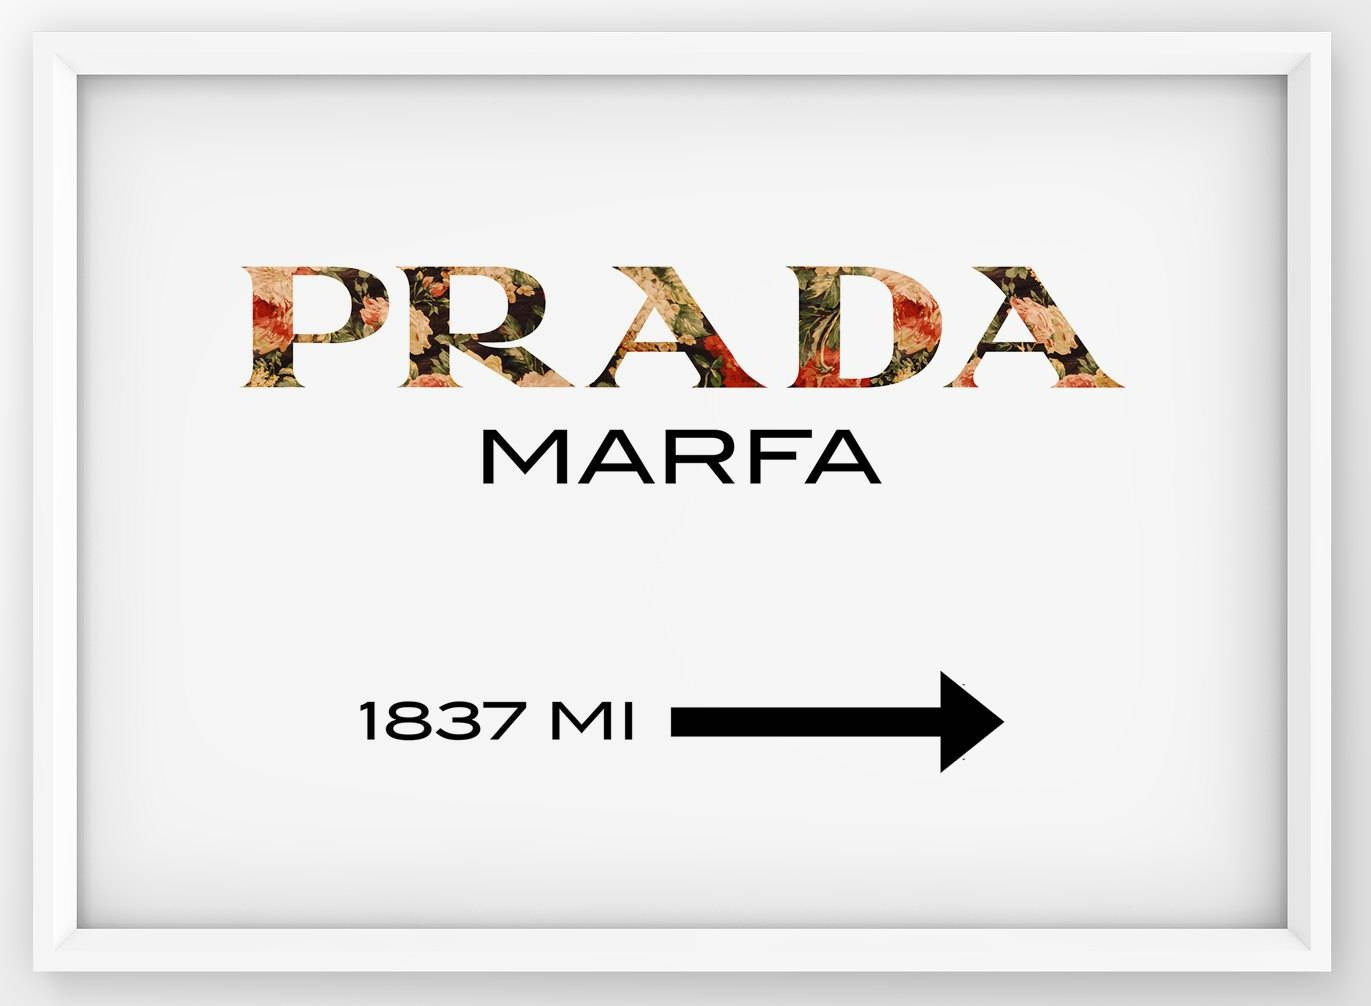 Floral Prada Marfa Sign Prada Marfa Print Prada Logo Poster With Regard To Most Recent Prada Wall Art (View 8 of 25)